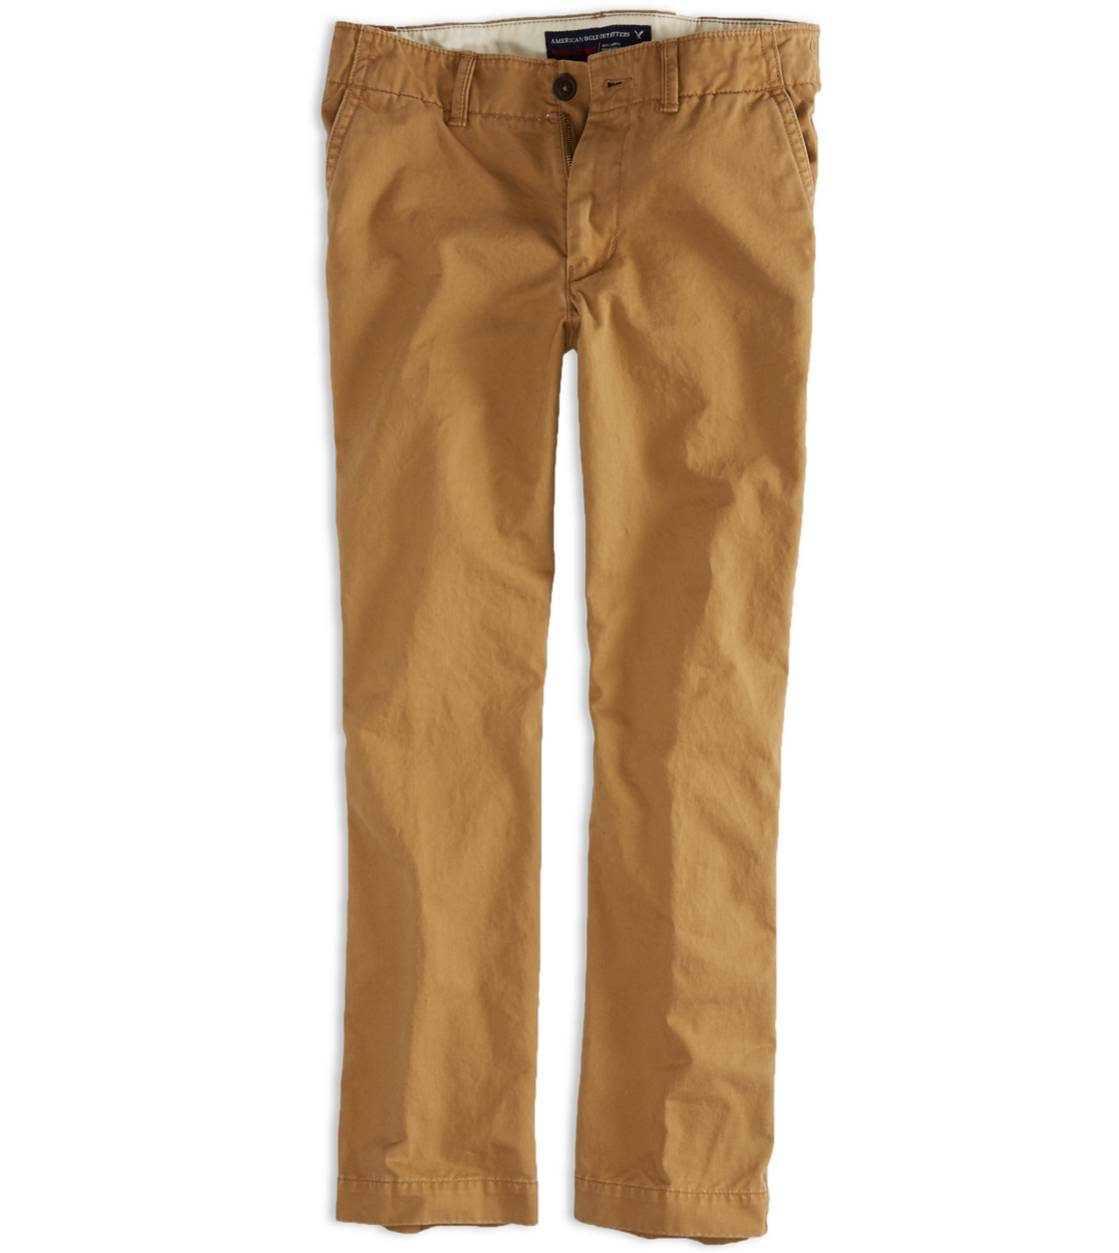 Campus Khaki AEO Factory Original Straight Khaki